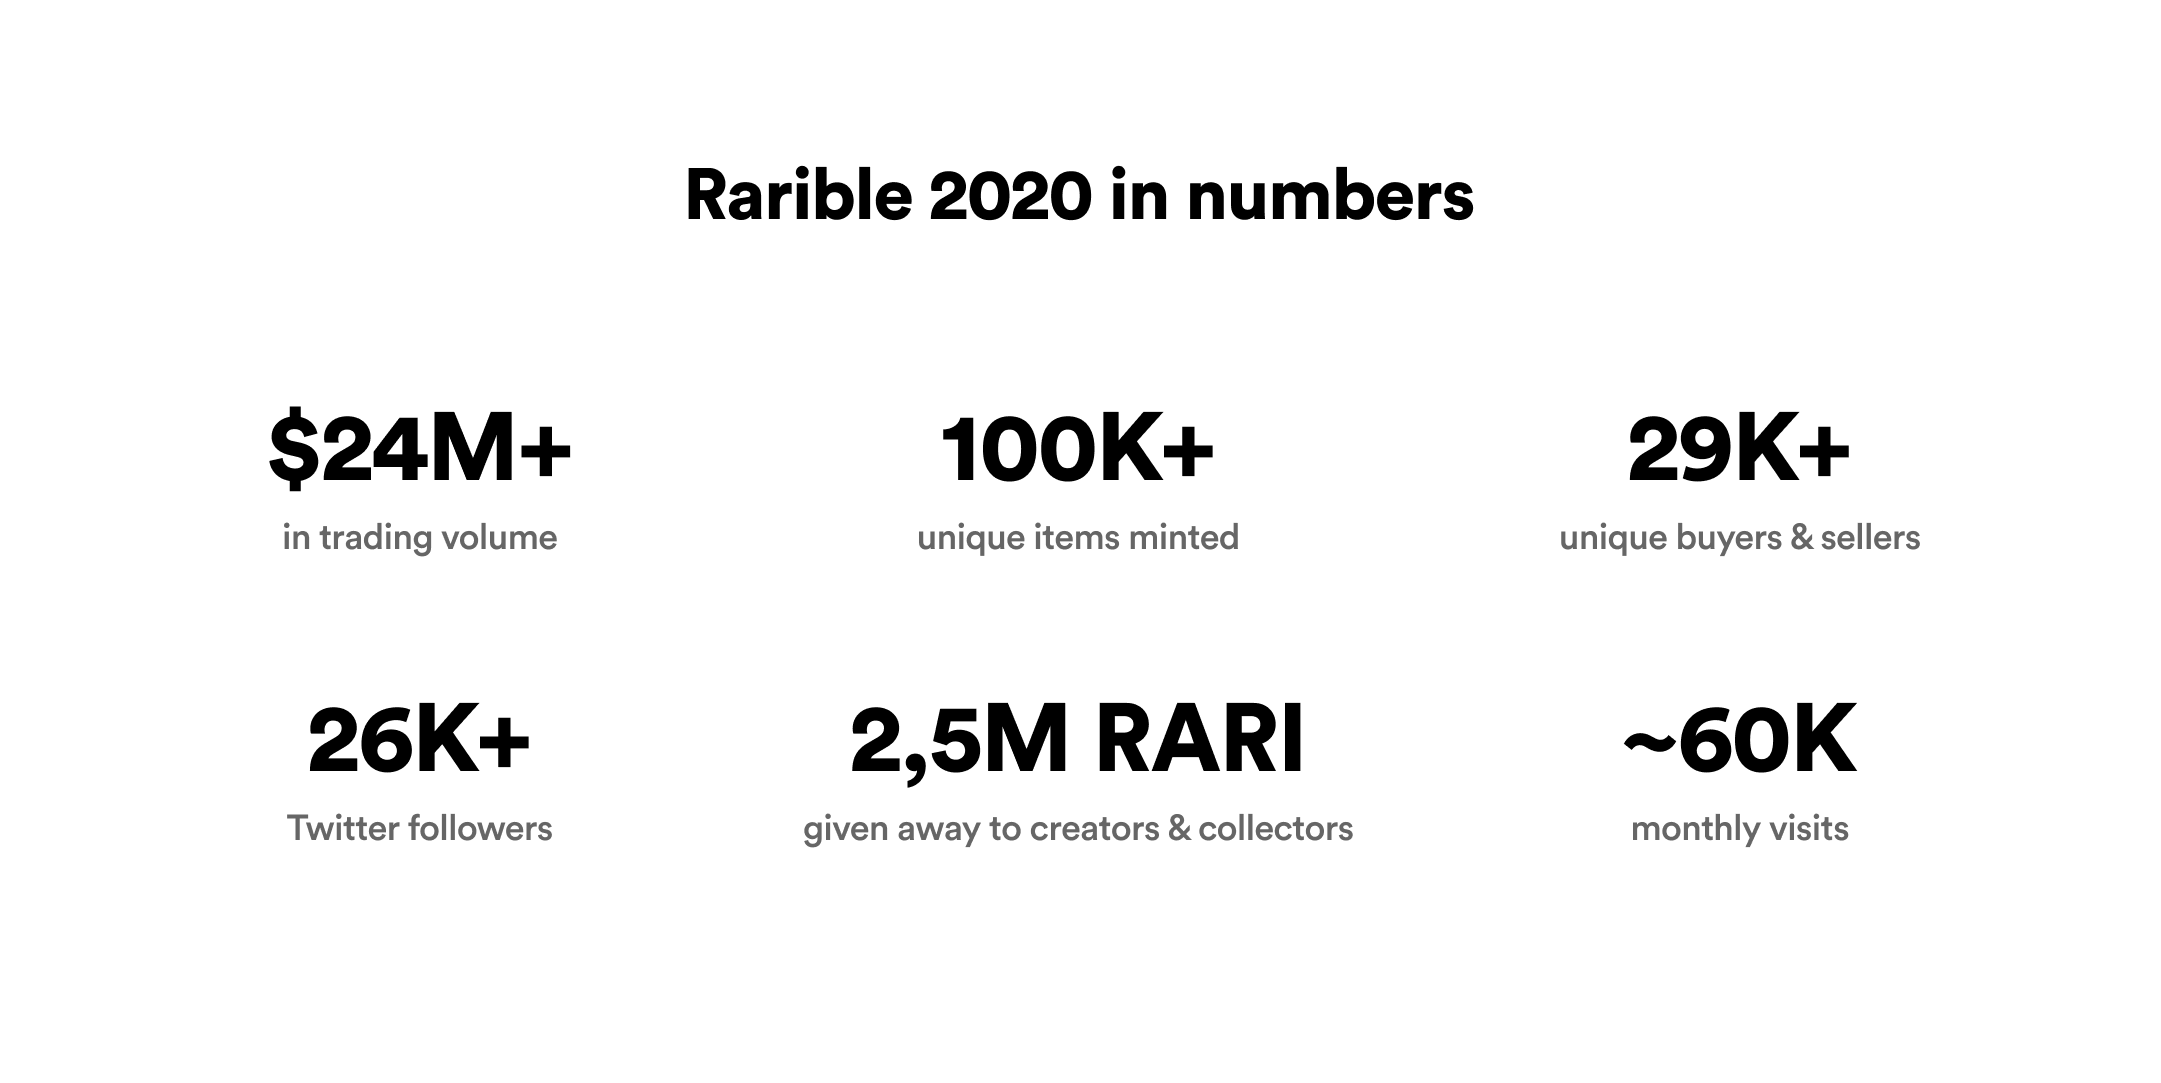 Rarible 2020 in numbers